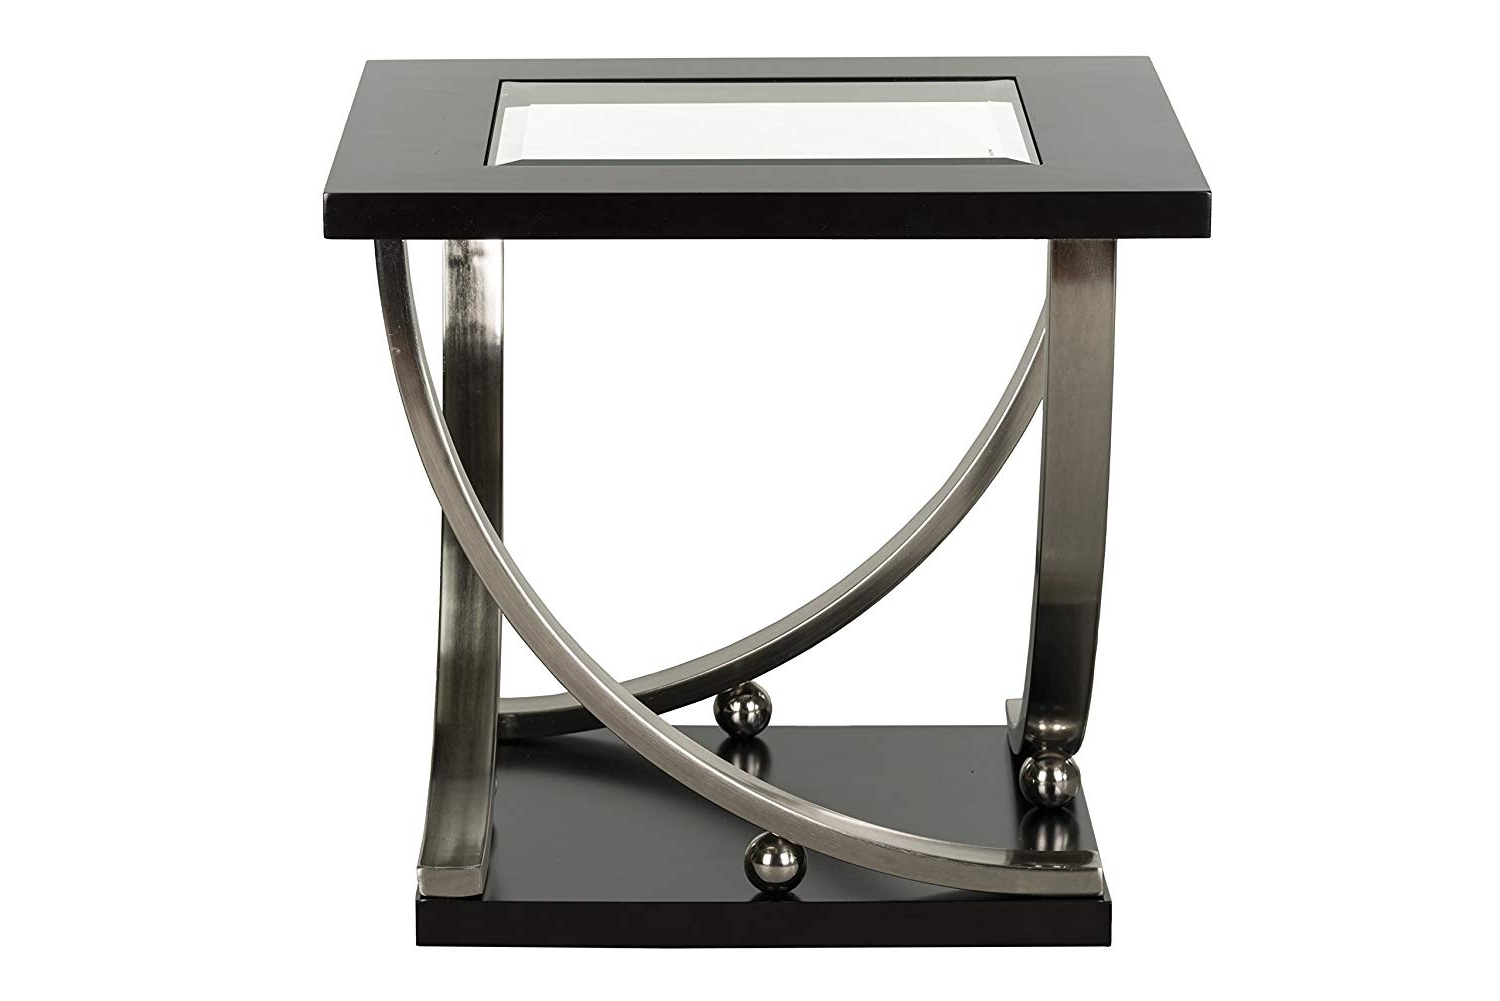 Latest Ina Matte Black 60 Inch Counter Tables With Frosted Glass In Amazon: Standard Furniture Melrose End Table With Casters, Brown (View 9 of 25)